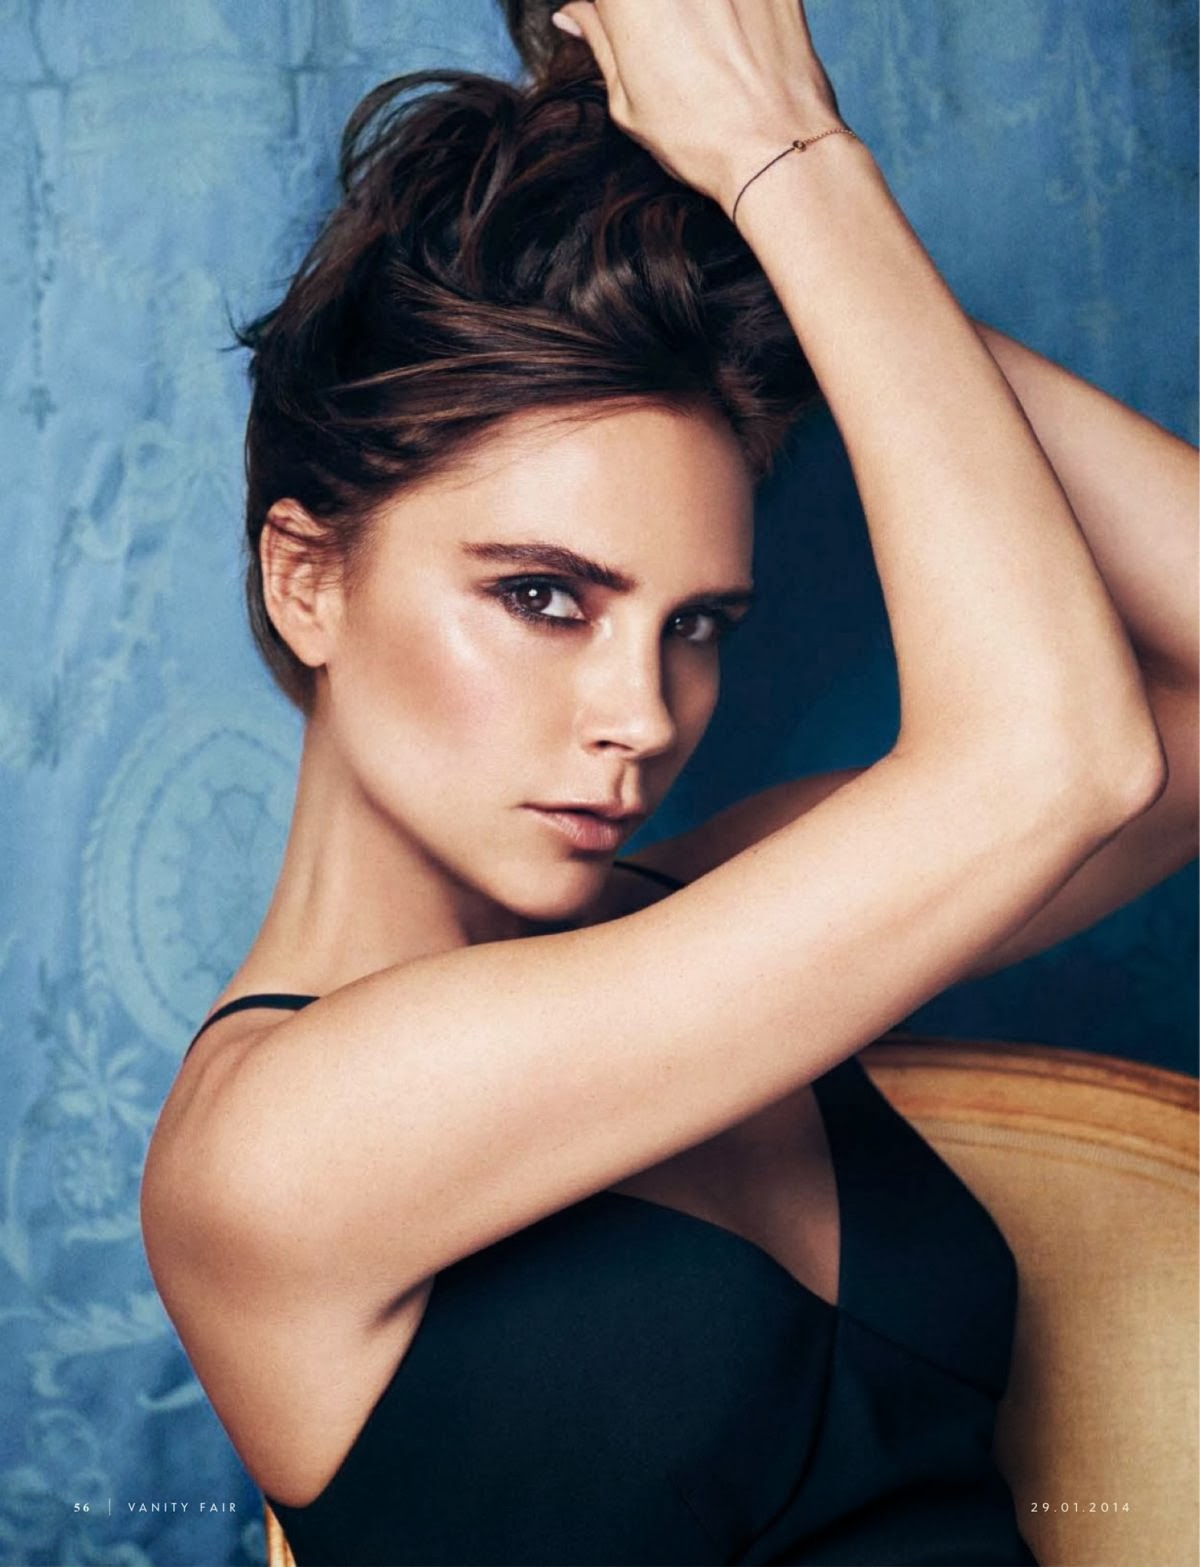 Magazine Photoshoot : Victoria Beckham Photoshot For Vanity Fair Magazine Italy January 2014 Issue